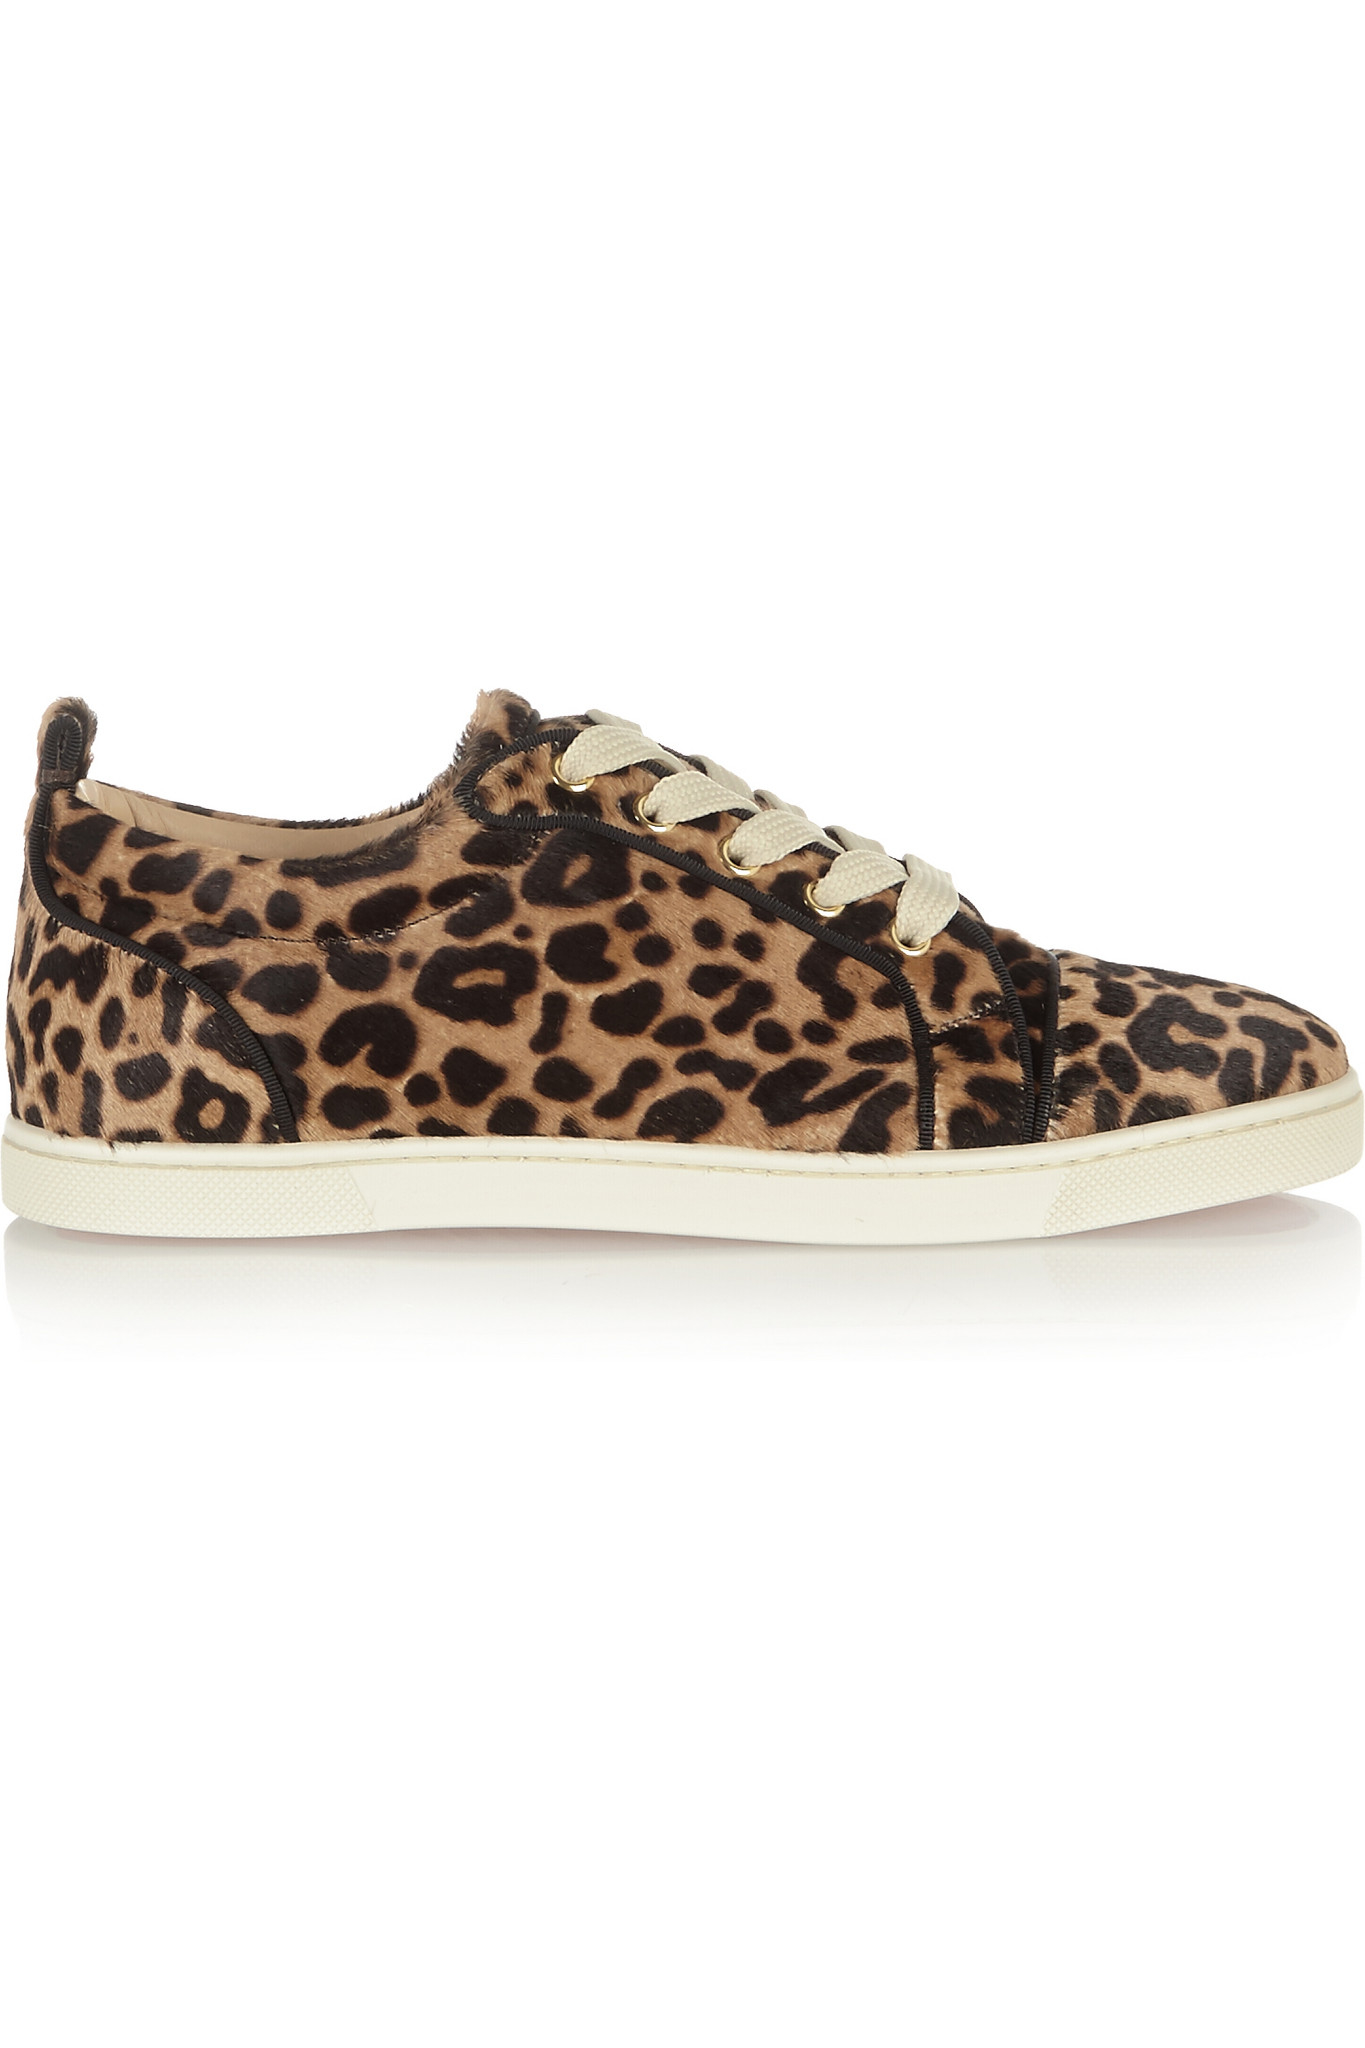 Gallery. Previously sold at: NET-A-PORTER � Women\u0027s Leopard Print Shoes